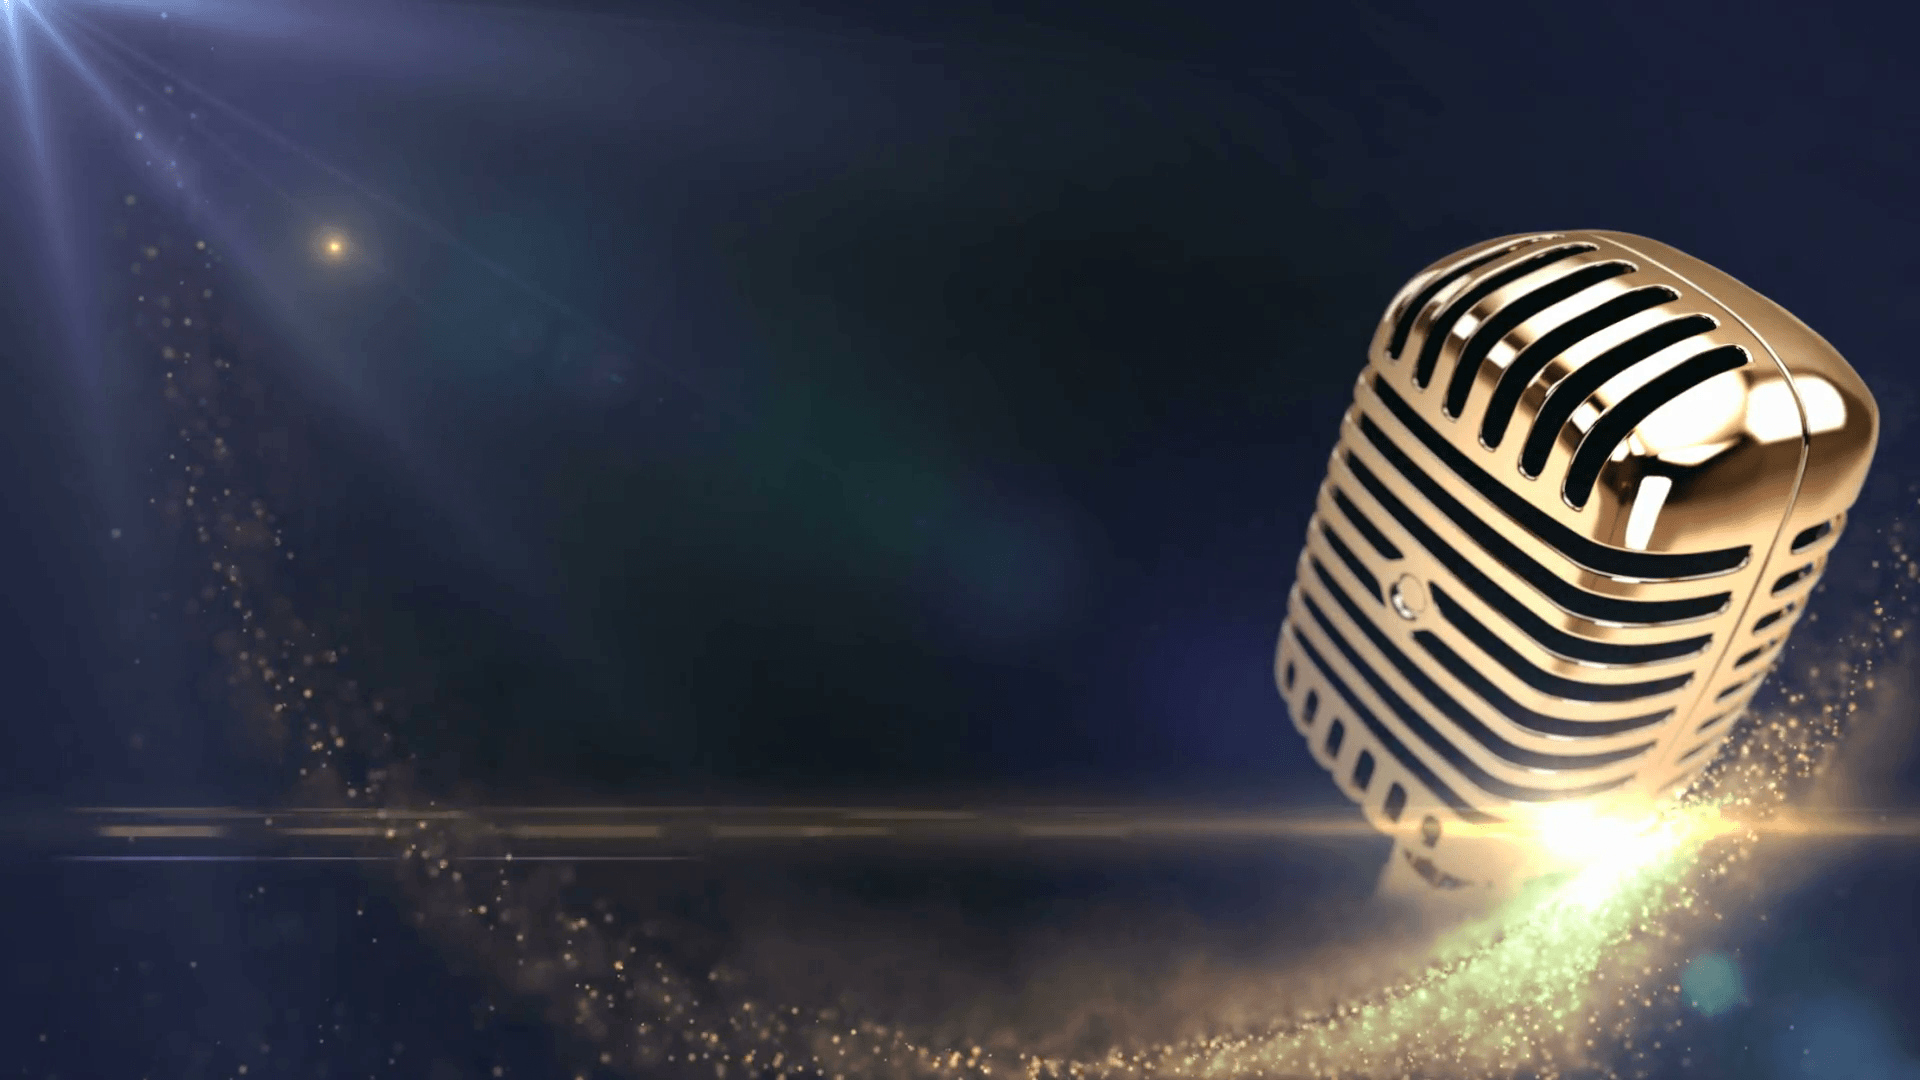 Microphone wallpapers top free microphone backgrounds - Microphone wallpaper ...